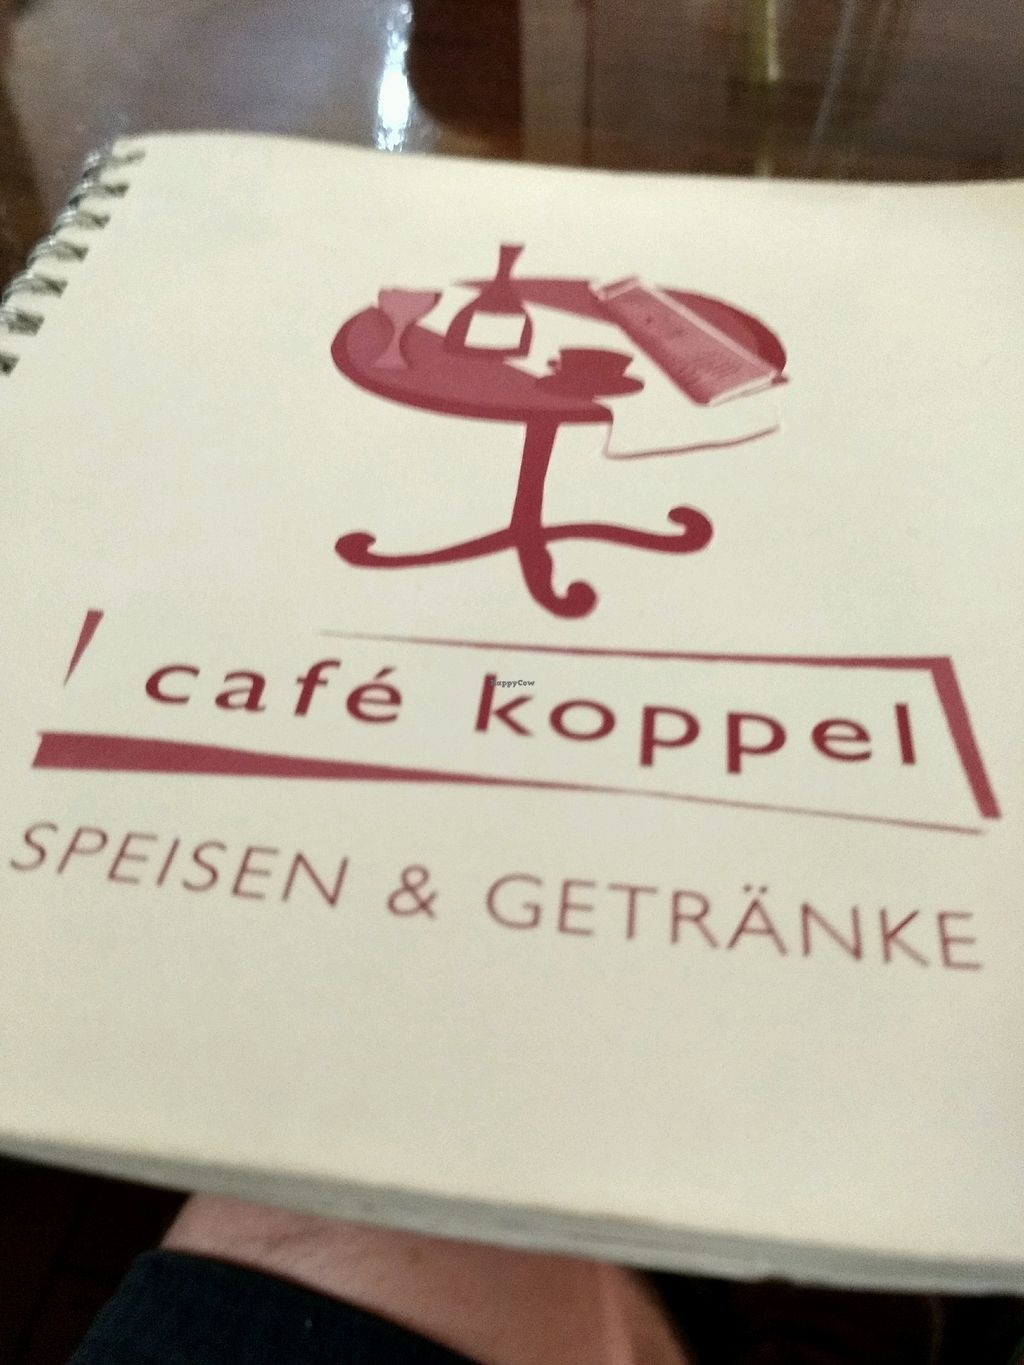 "Photo of Cafe Koppel  by <a href=""/members/profile/craigmc"">craigmc</a> <br/>menu <br/> March 12, 2018  - <a href='/contact/abuse/image/16259/369701'>Report</a>"